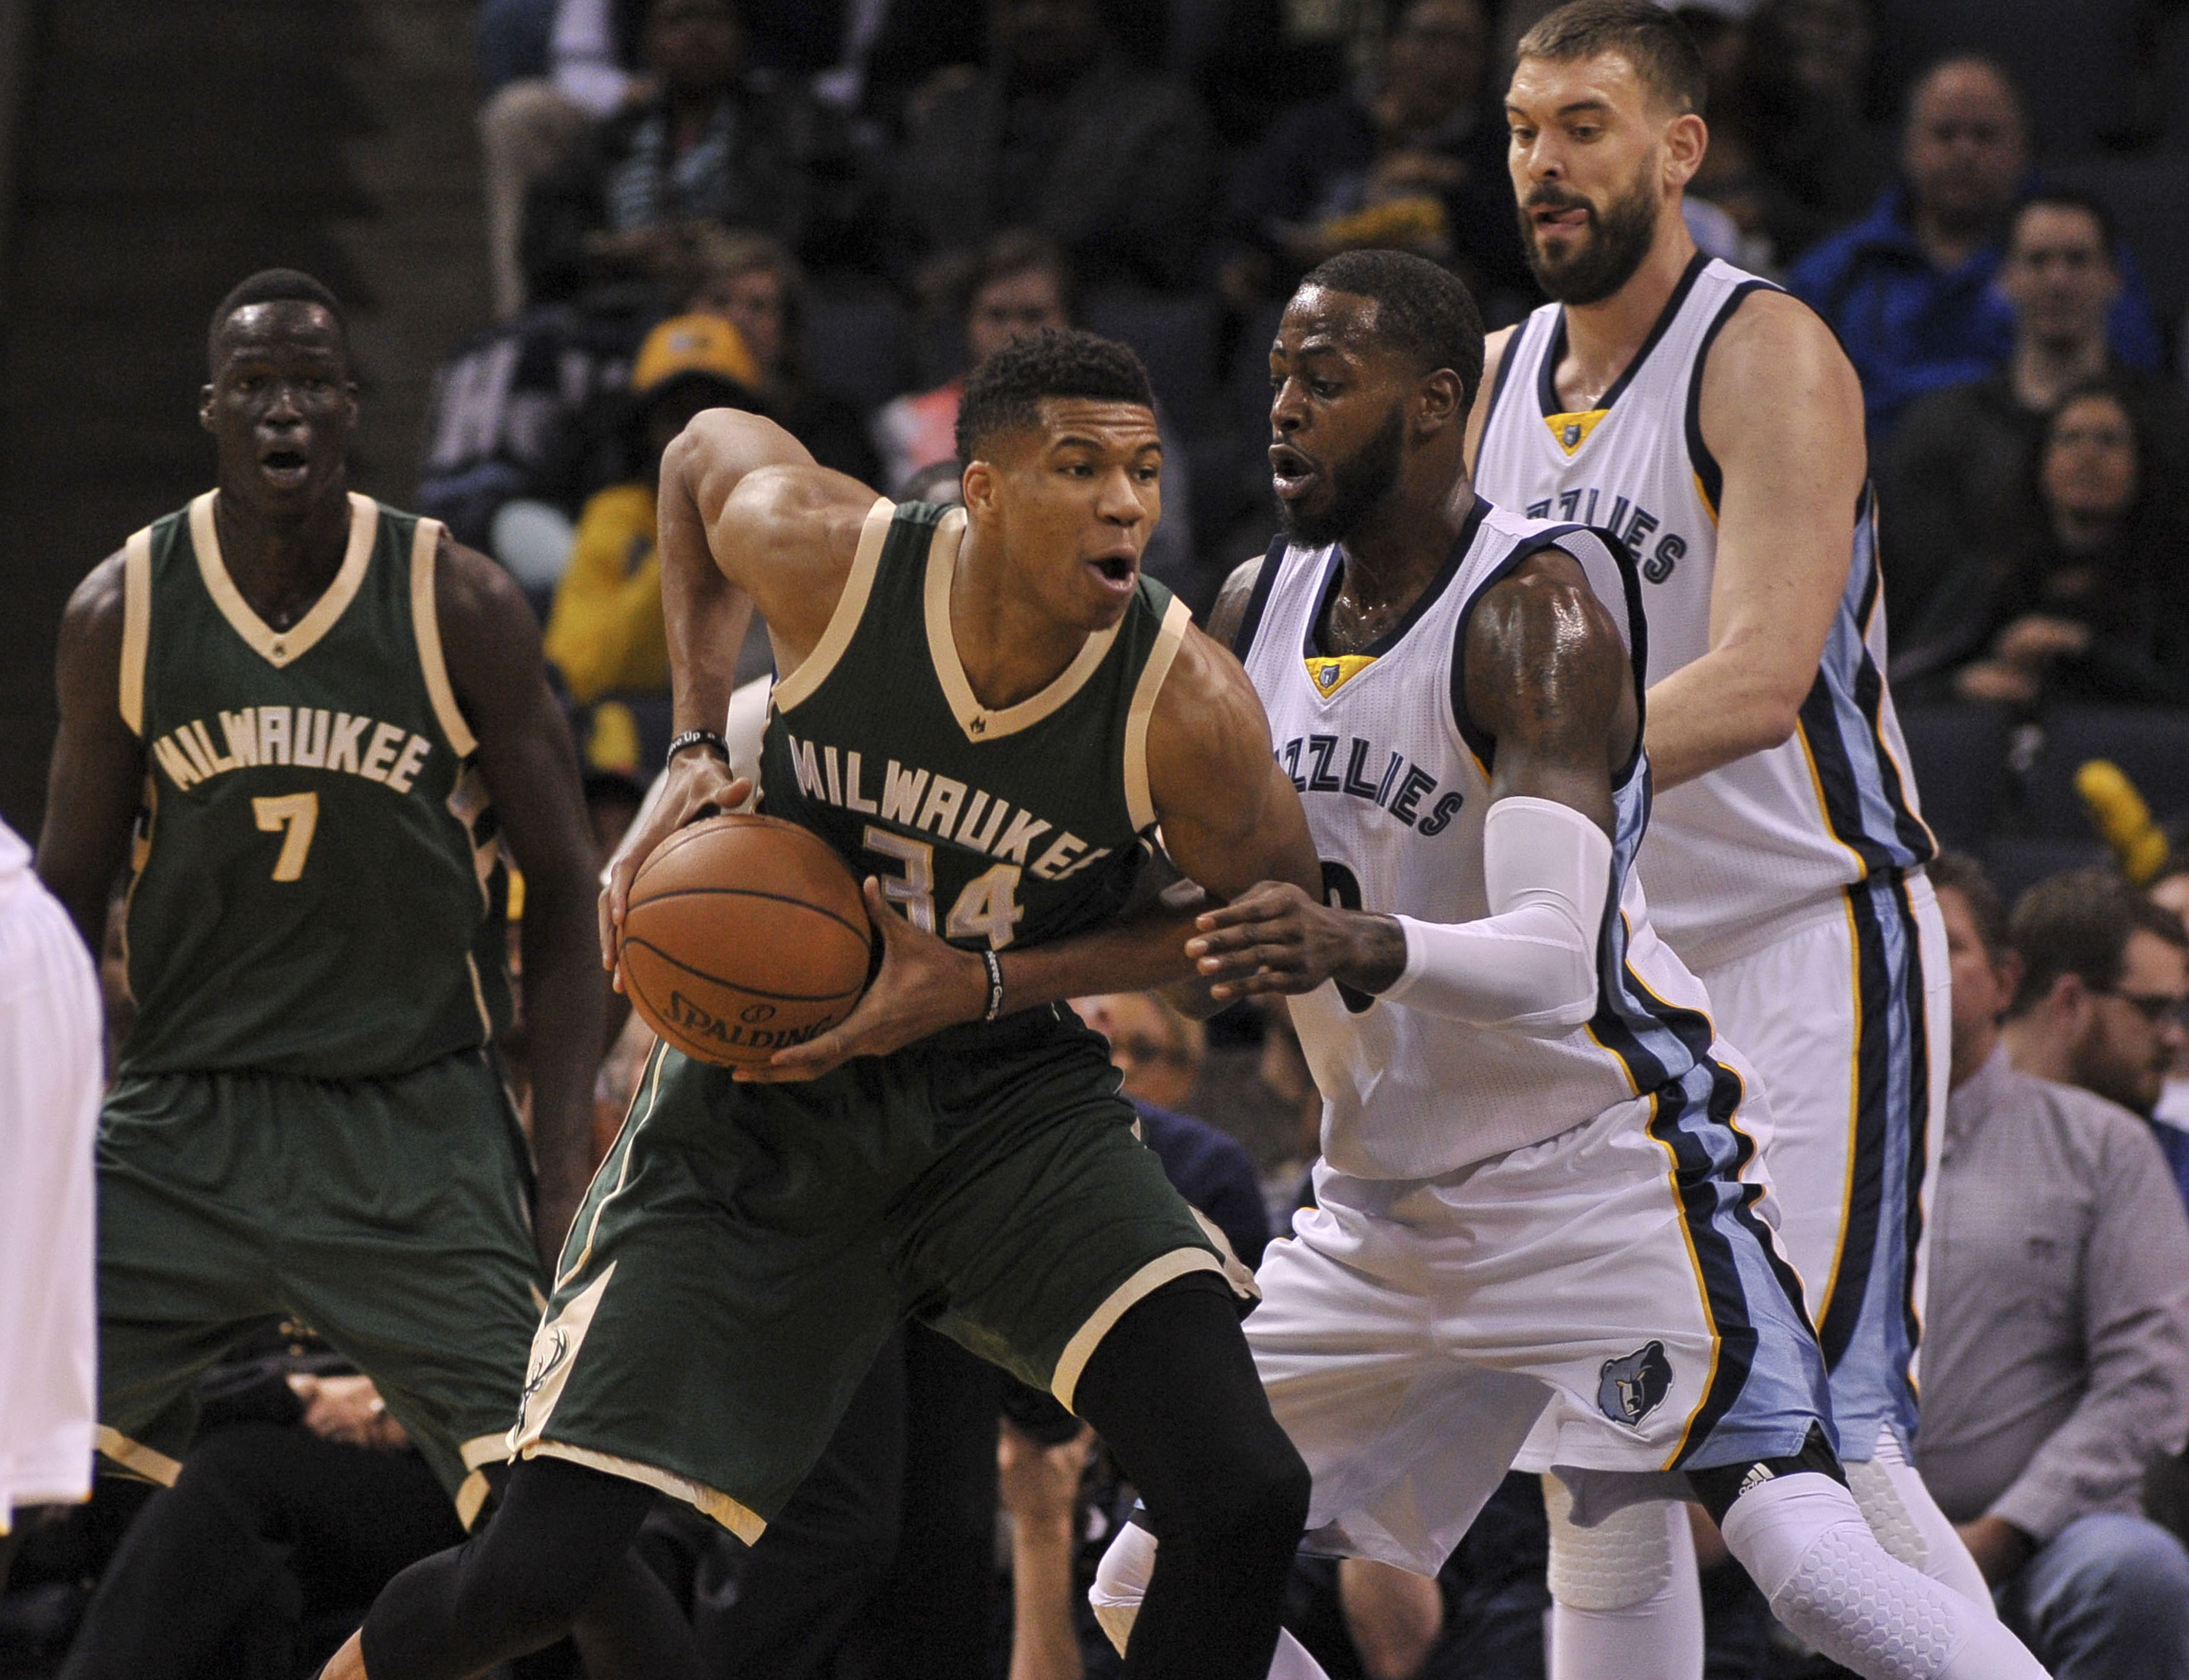 9940475-nba-milwaukee-bucks-at-memphis-grizzlies